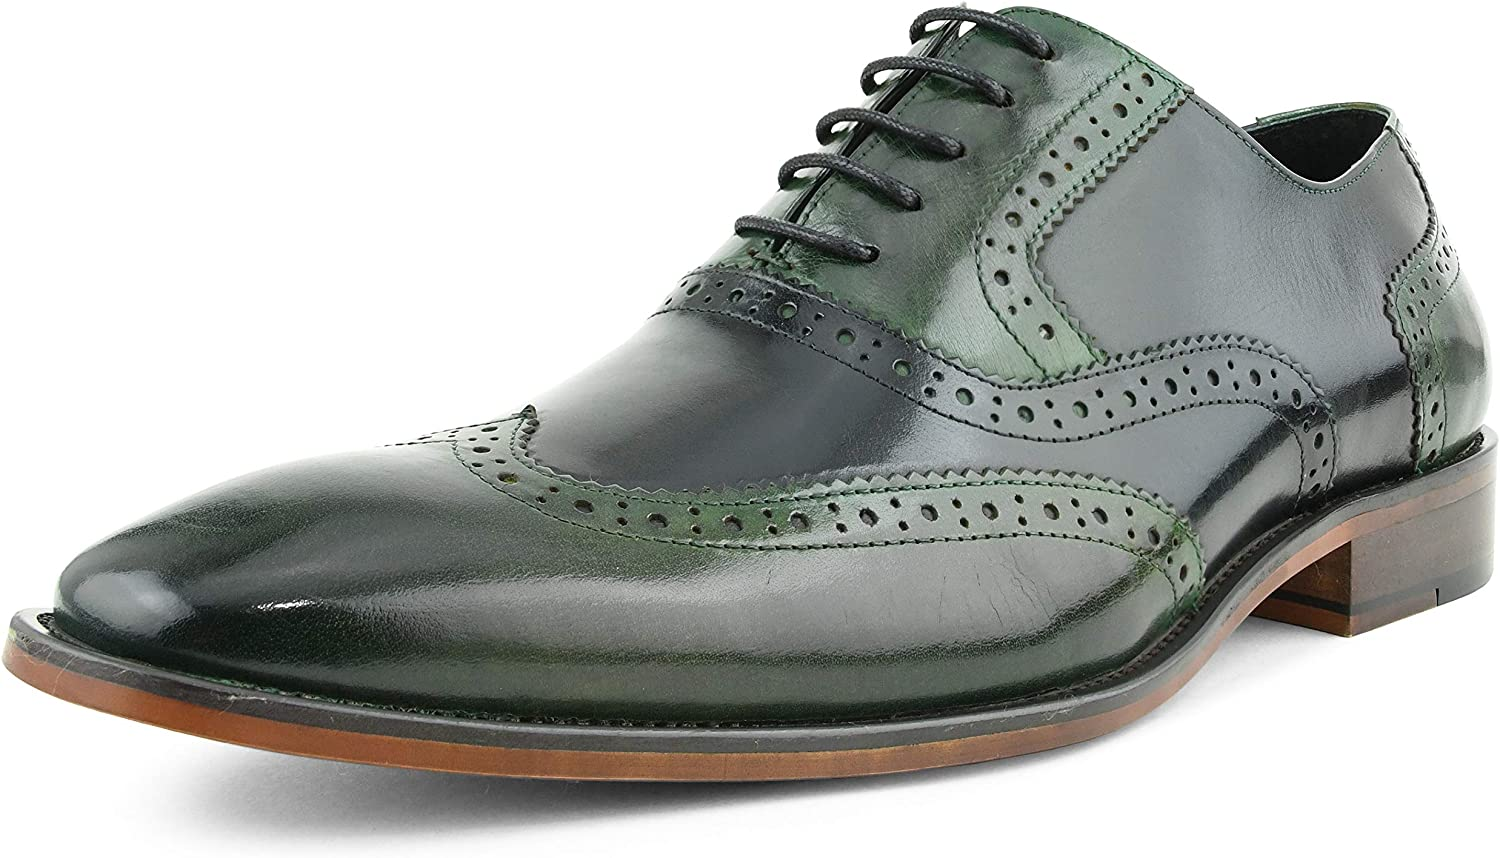 Asher Green AG100 - Men's Dress Shoes - Genuine Calf Leather Wingtip Oxfords - Two Tone and Multi Tone Mens Dress Shoes